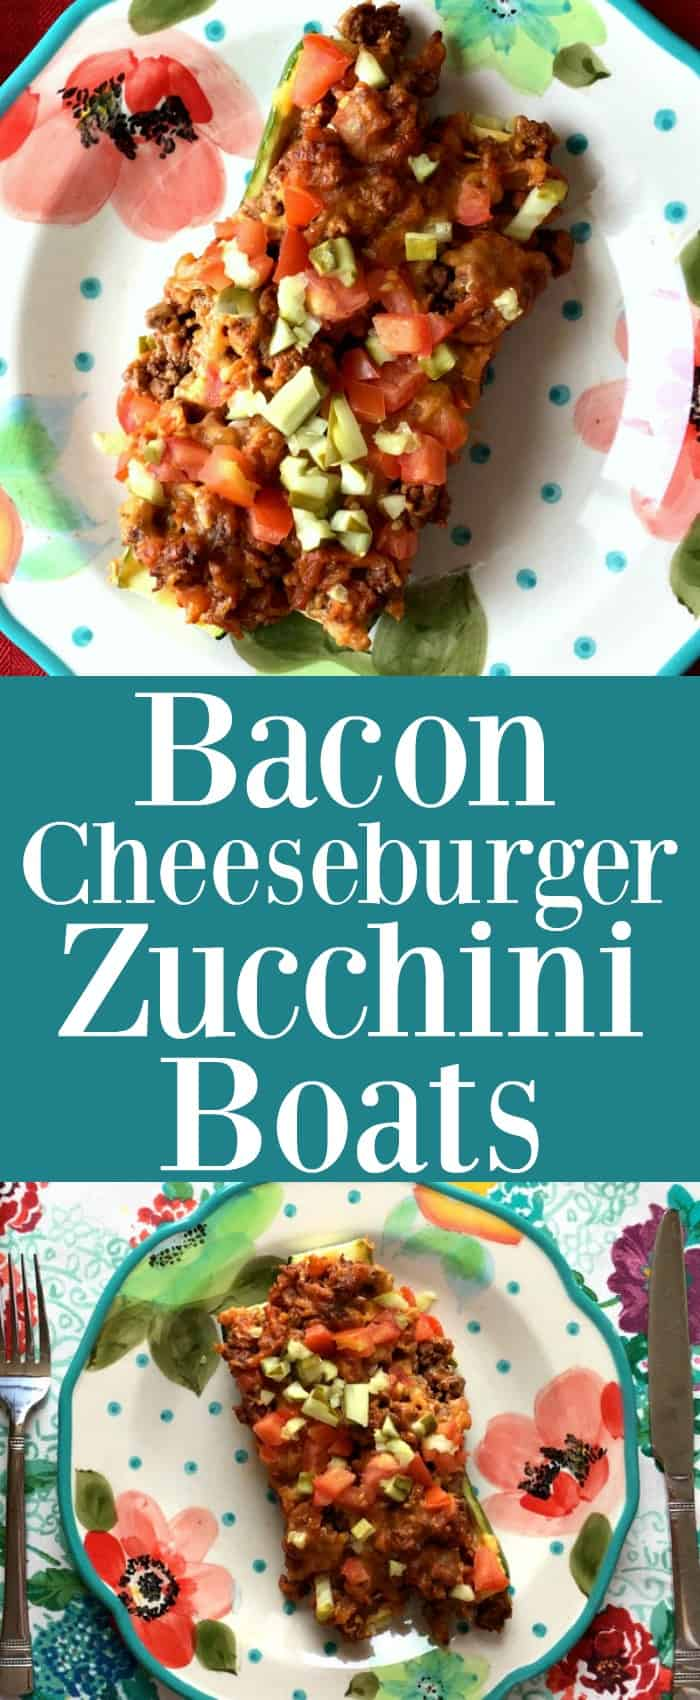 Bacon Cheeseburger Zucchini Boats Pinterest Pin #dinnerideas #zucchini #cheesebugers